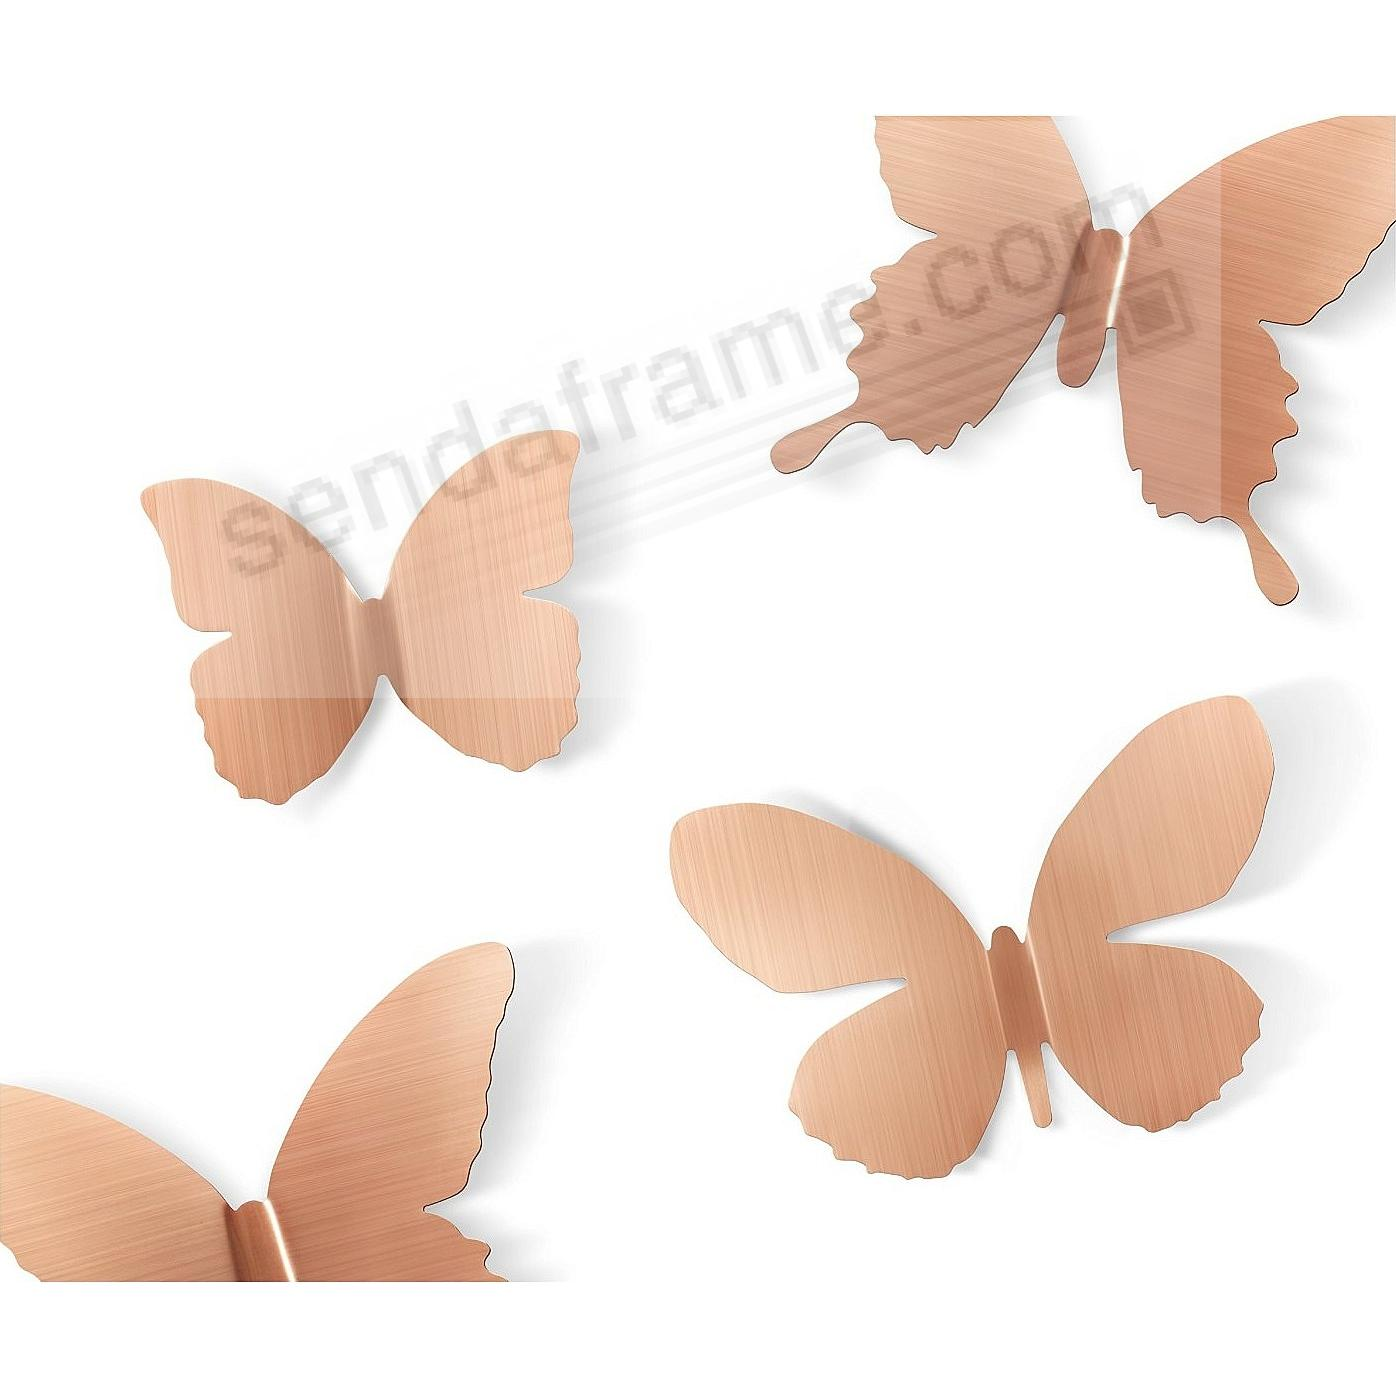 The Original MARIPOSA BUTTERFLY Stick-On COPPER Wall Decor by Umbra® Set of 9